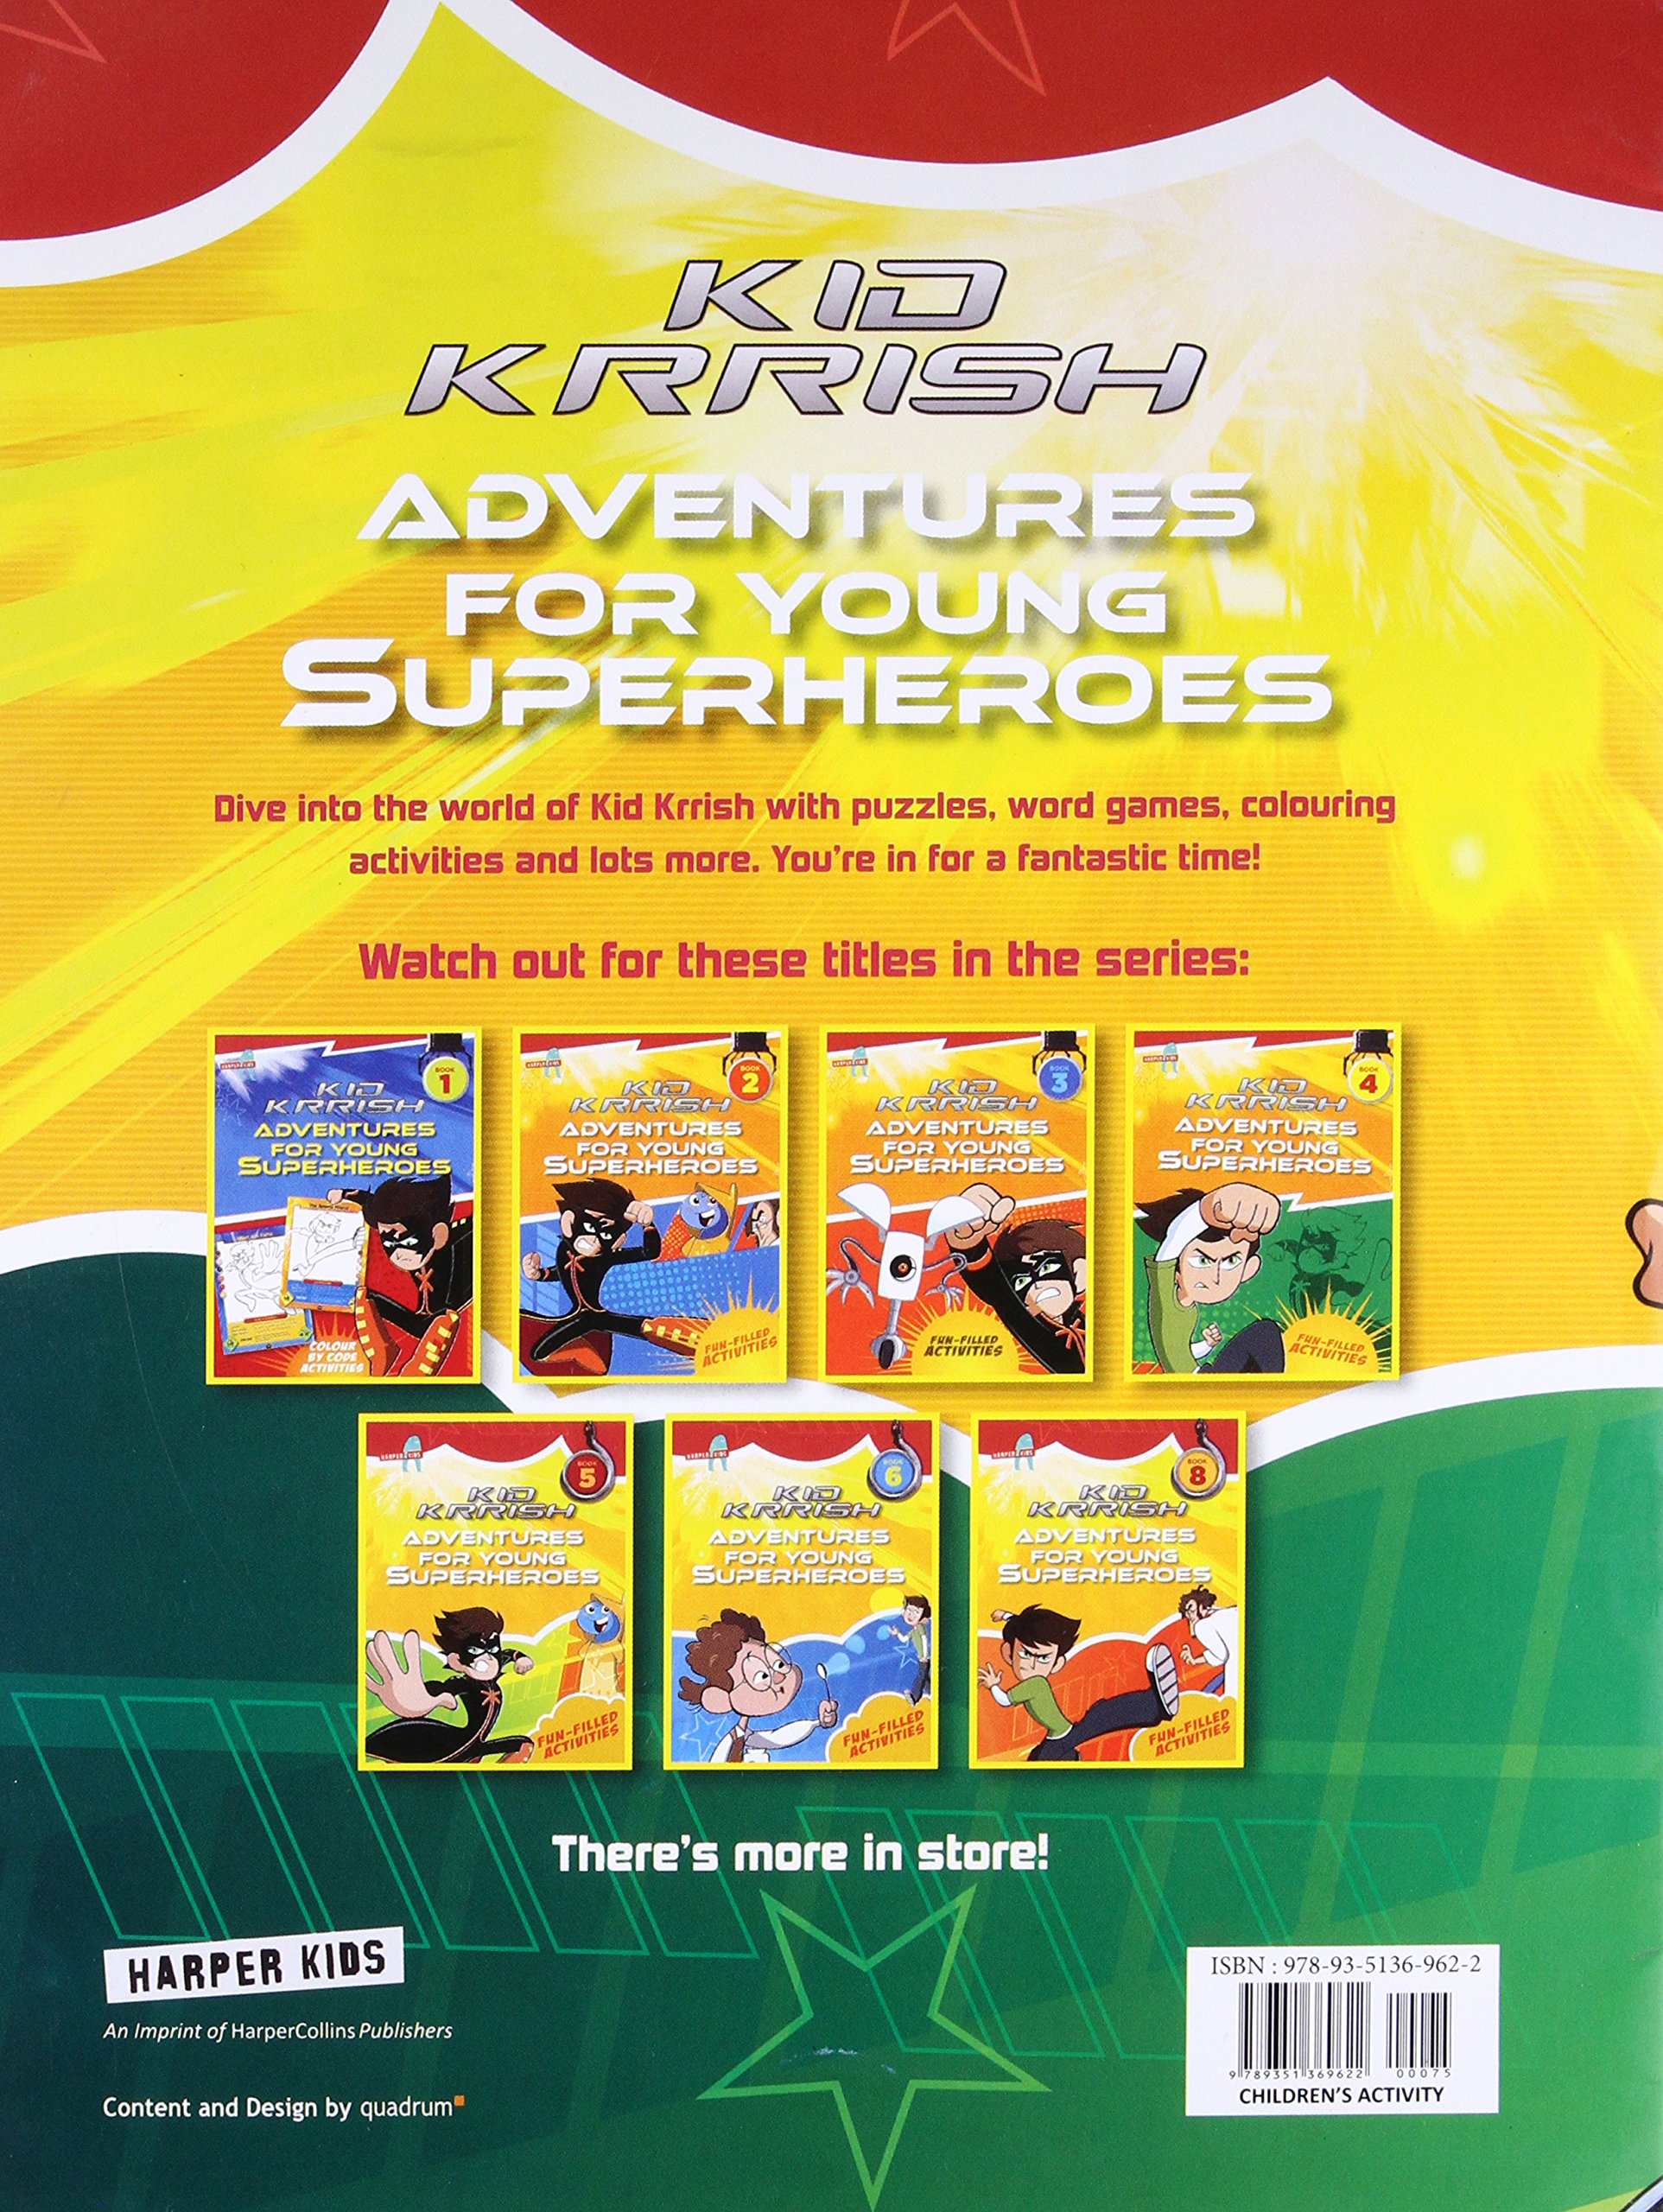 Amazon Kid Krrish Fun Filled Activities Book 7 Adventures For Young Superheroes 9789351369622 HarperCollins Publishers India Books